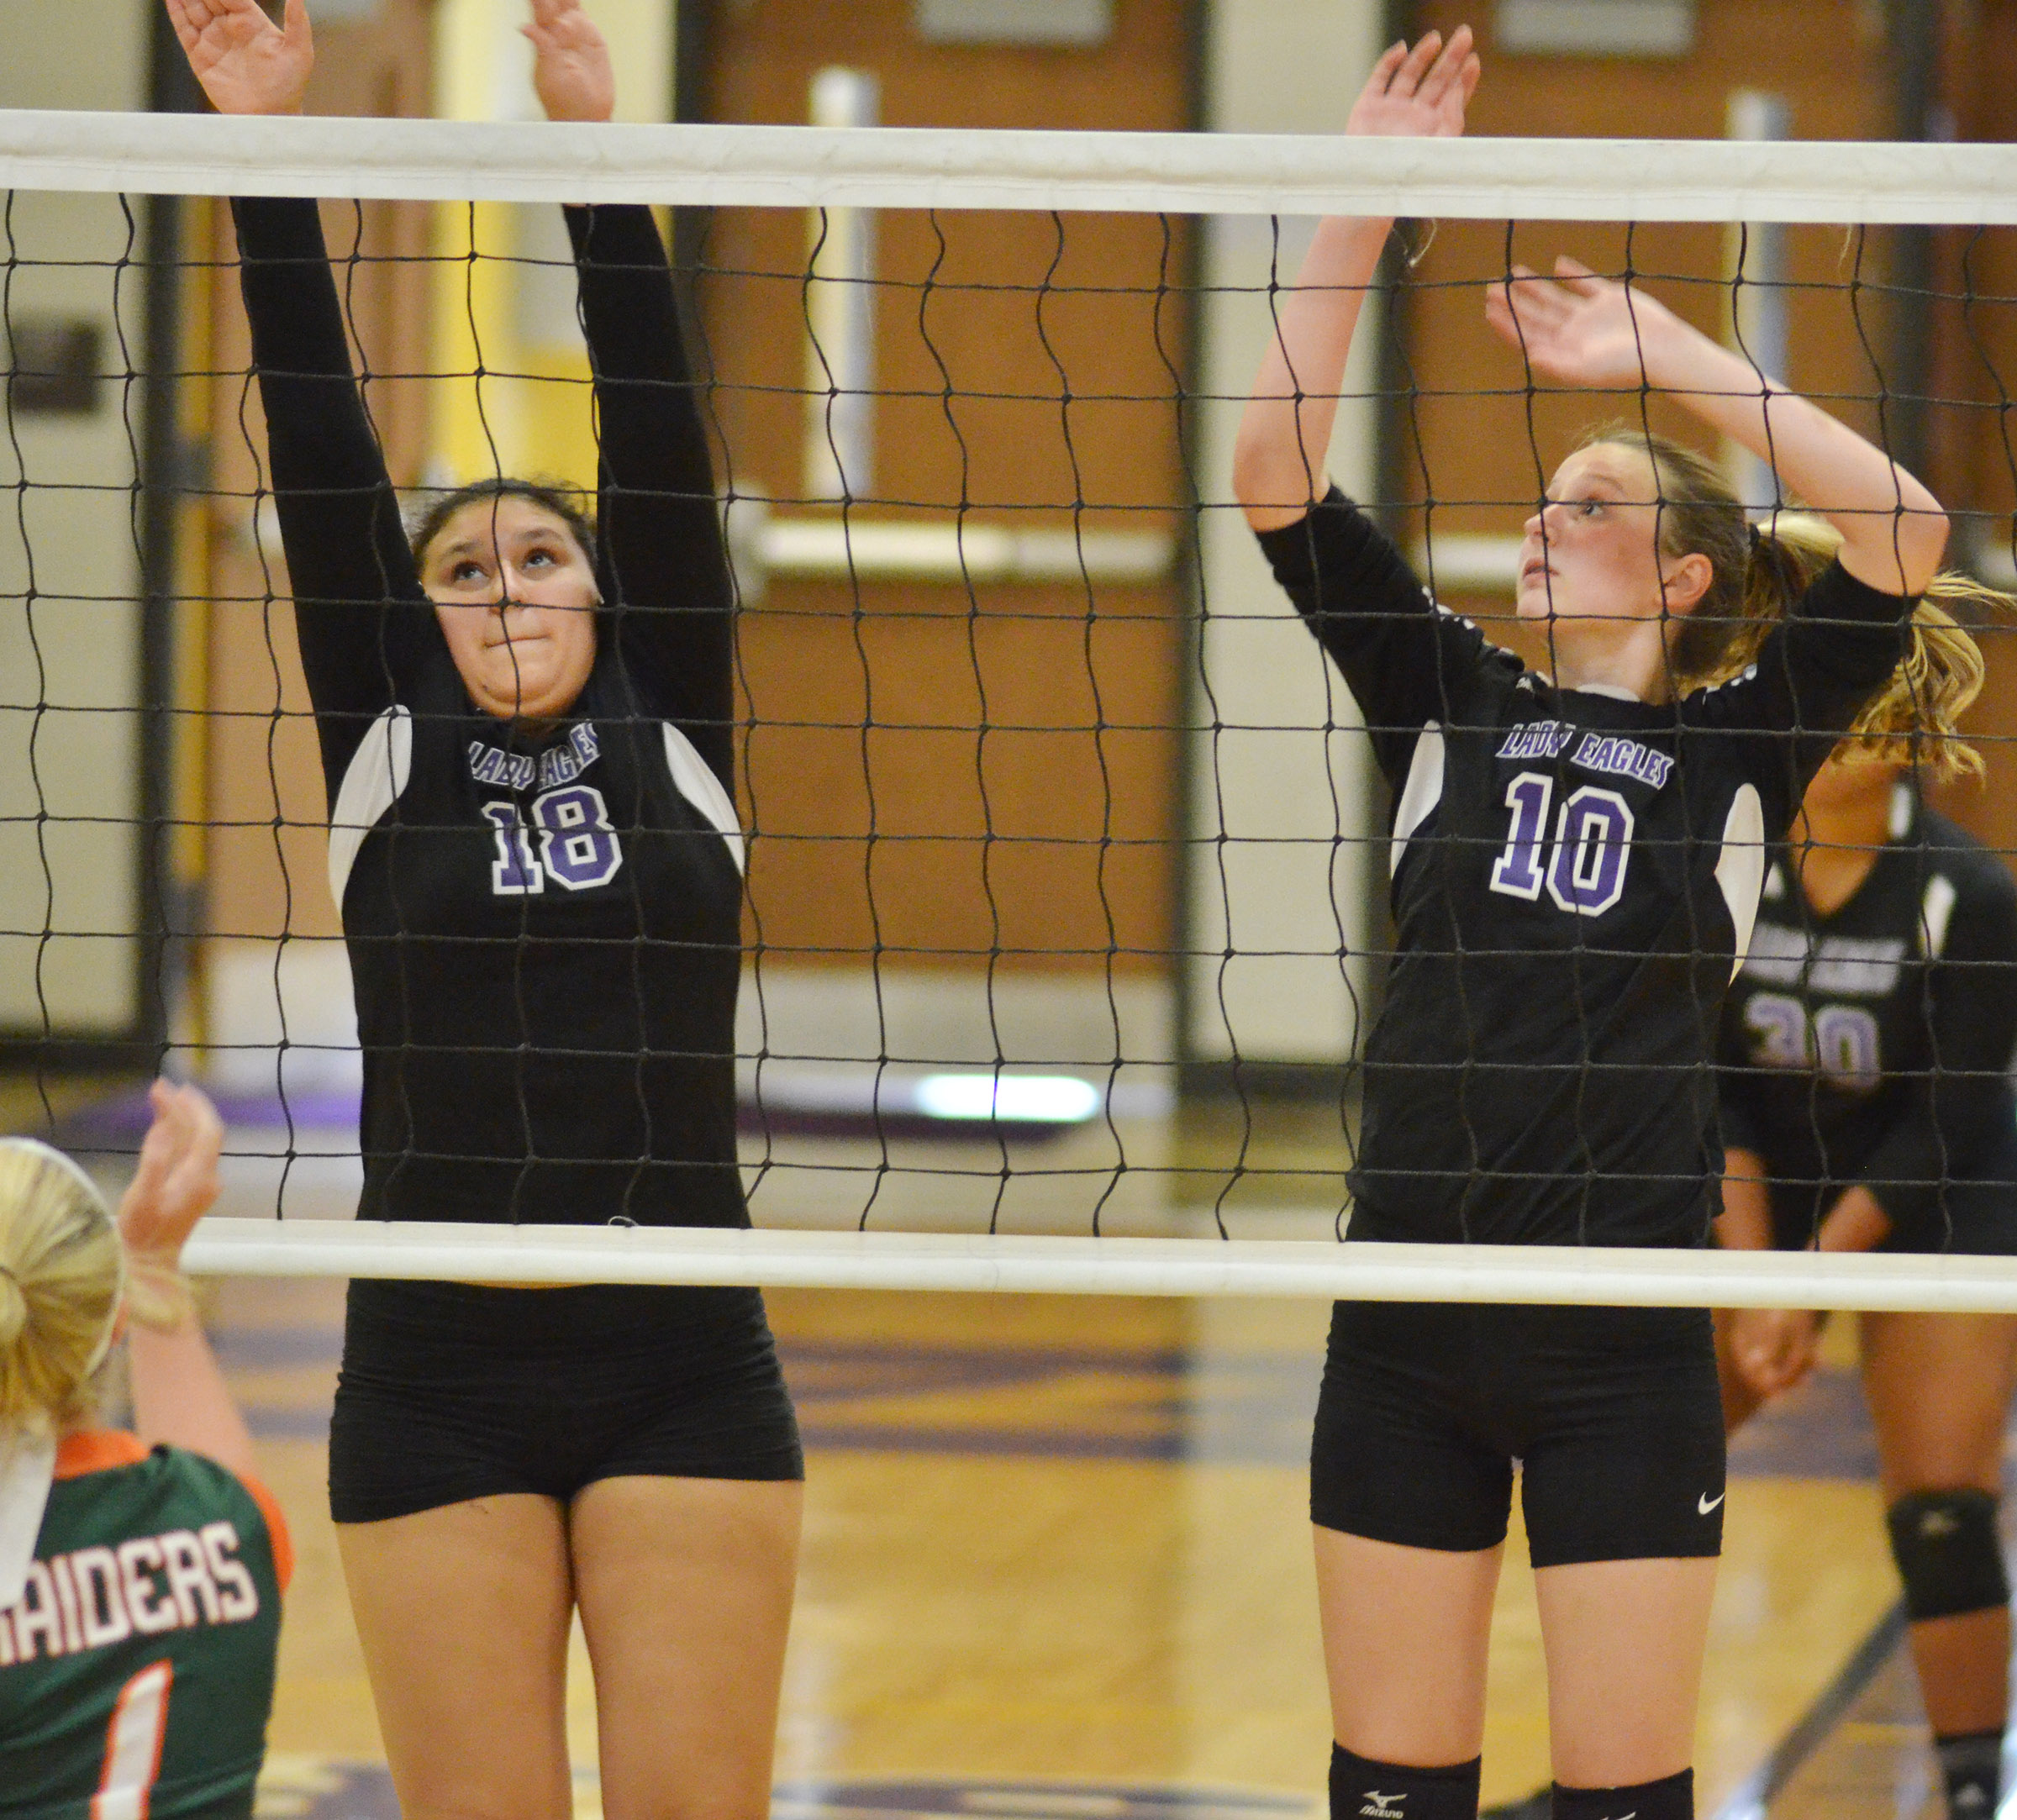 CHS freshmen Anna Clara Moura, at left, and Zoie Sidebottom jump to block the ball.